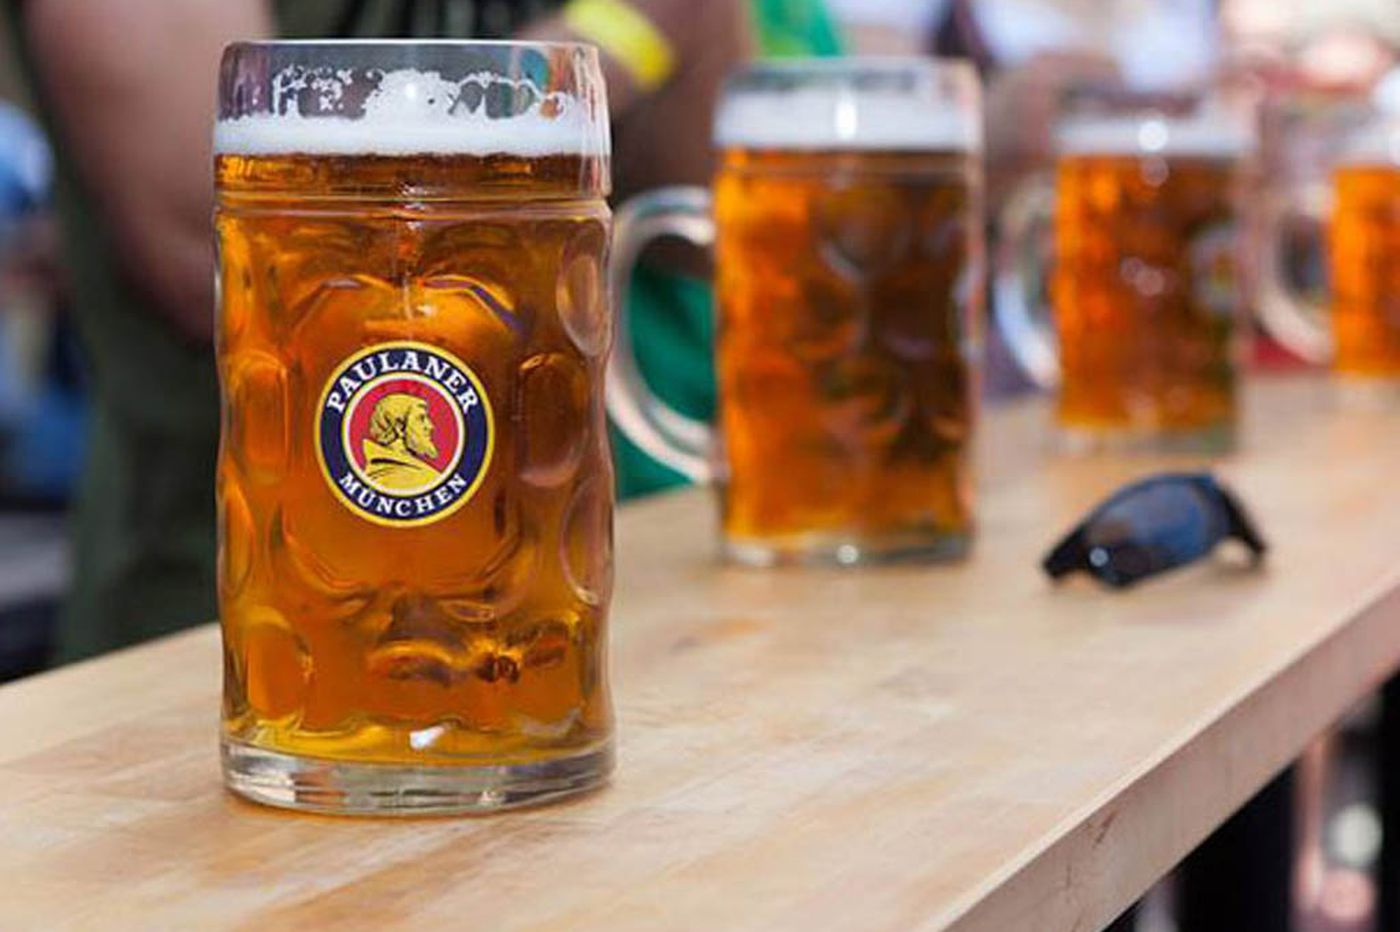 Punk that pumpkin beer - Octoberfestbier is the brew for fall